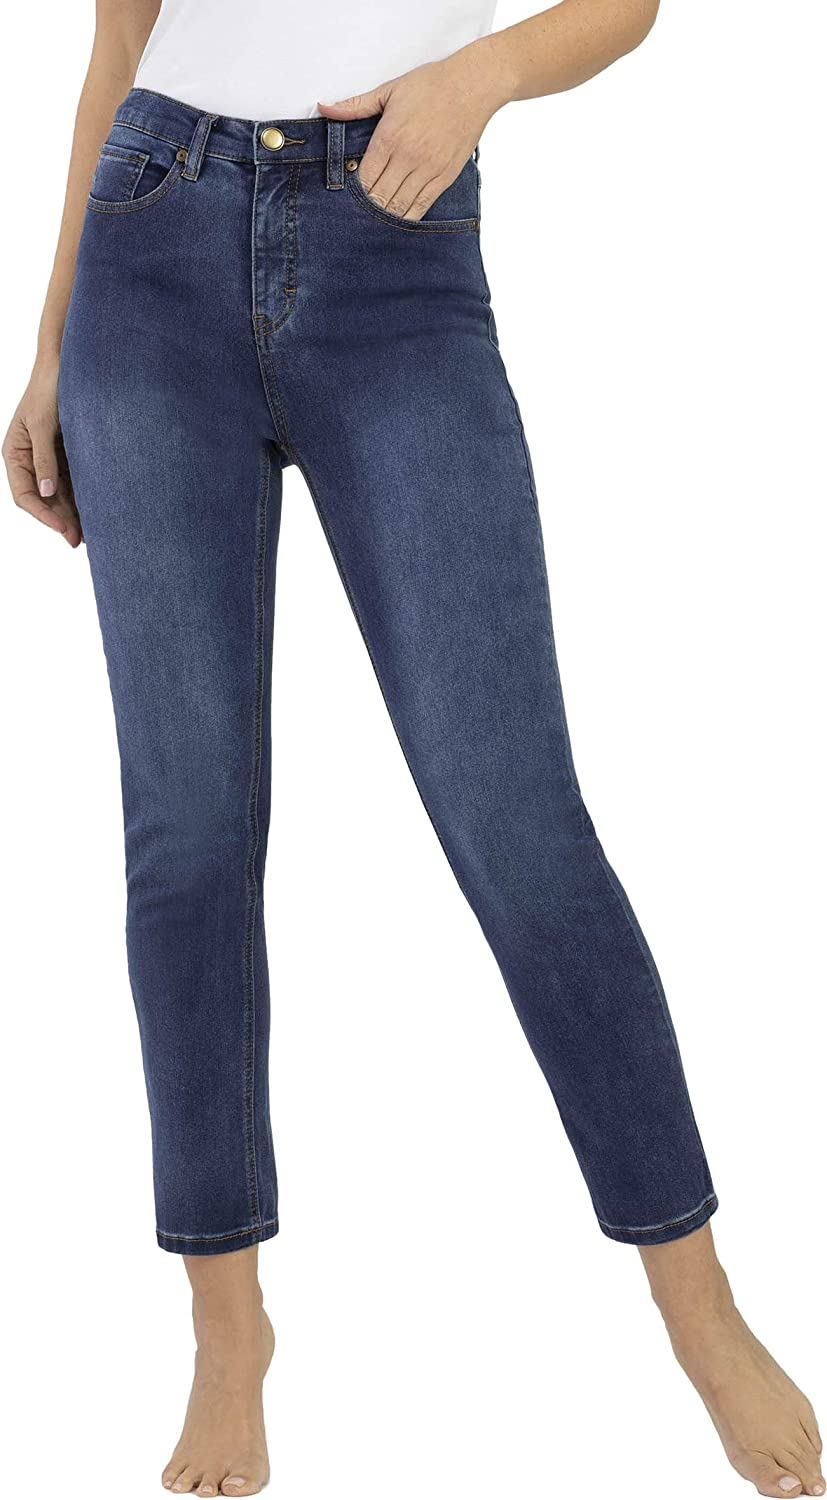 Tribal Women's Indianapolis Mall Jeans Recommendation